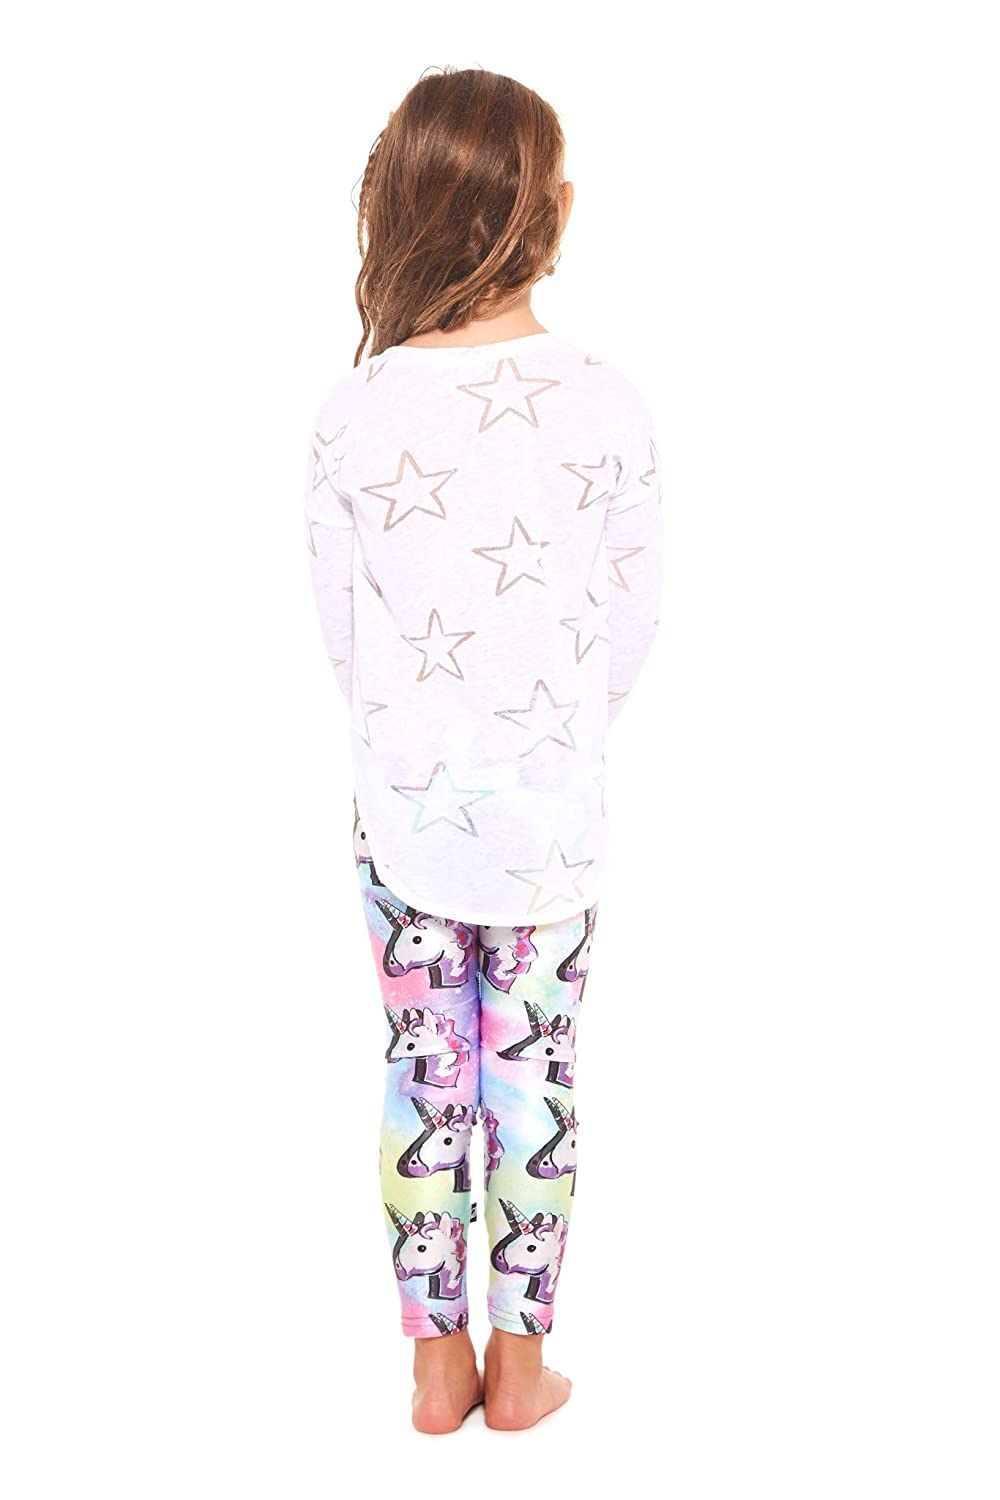 Workout Clothes for Kids Terez Leggings for Girls and Boys Fun Rainbow Unicorn Pants